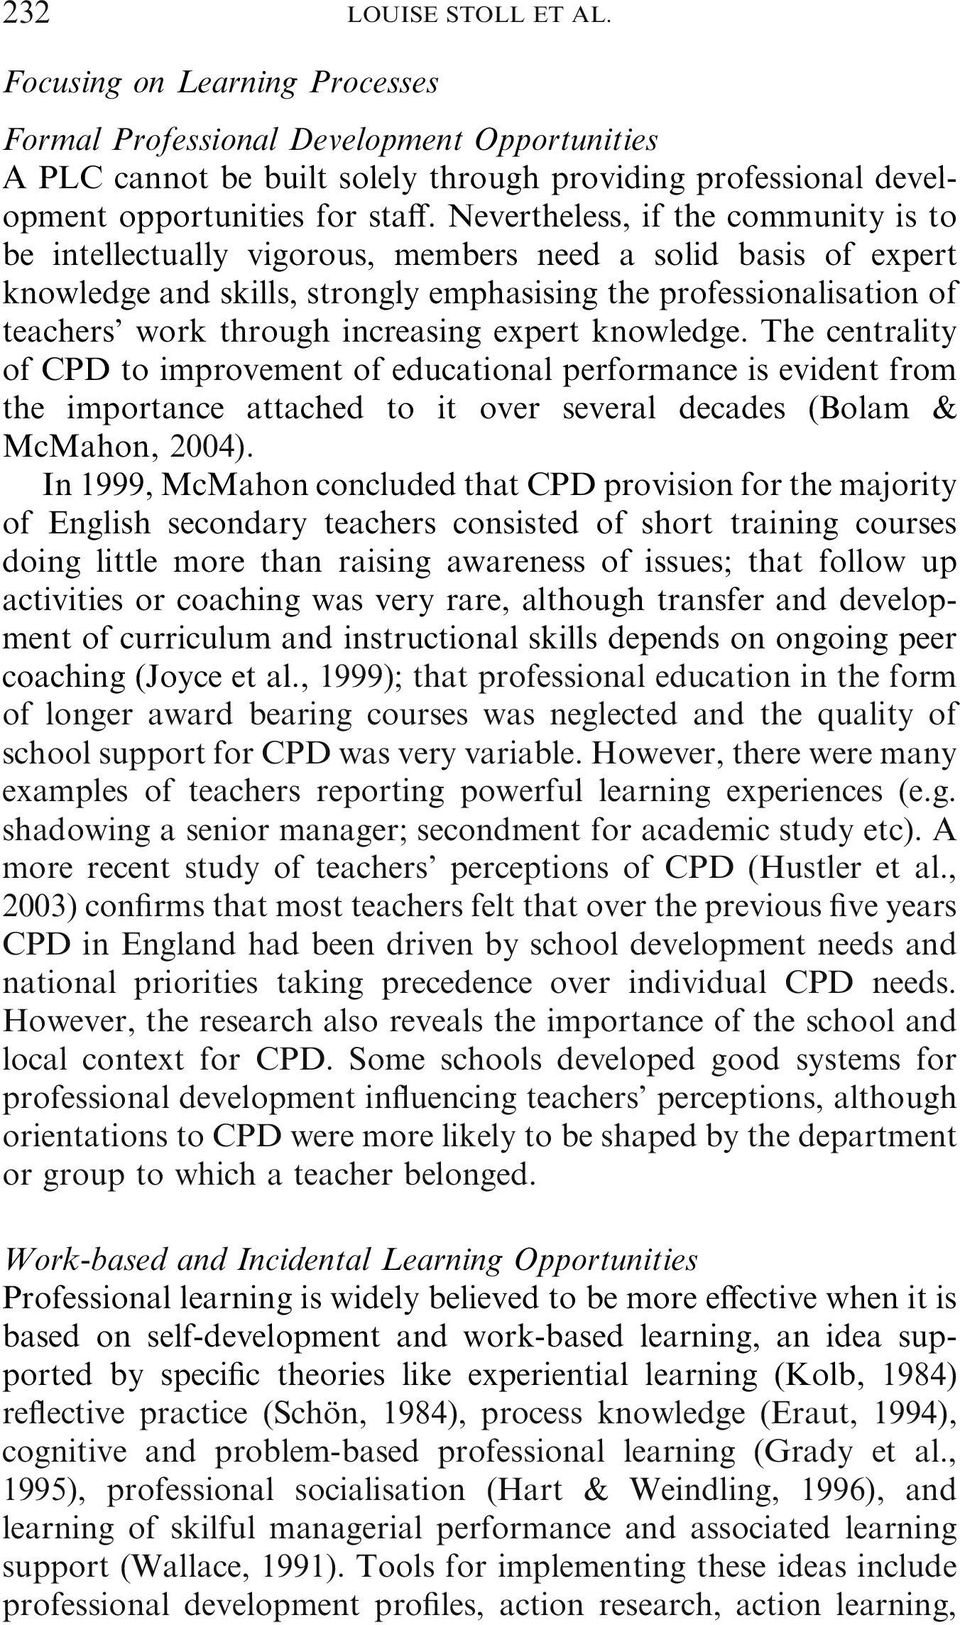 increasing expert knowledge. The centrality of CPD to improvement of educational performance is evident from the importance attached to it over several decades (Bolam & McMahon, 2004).